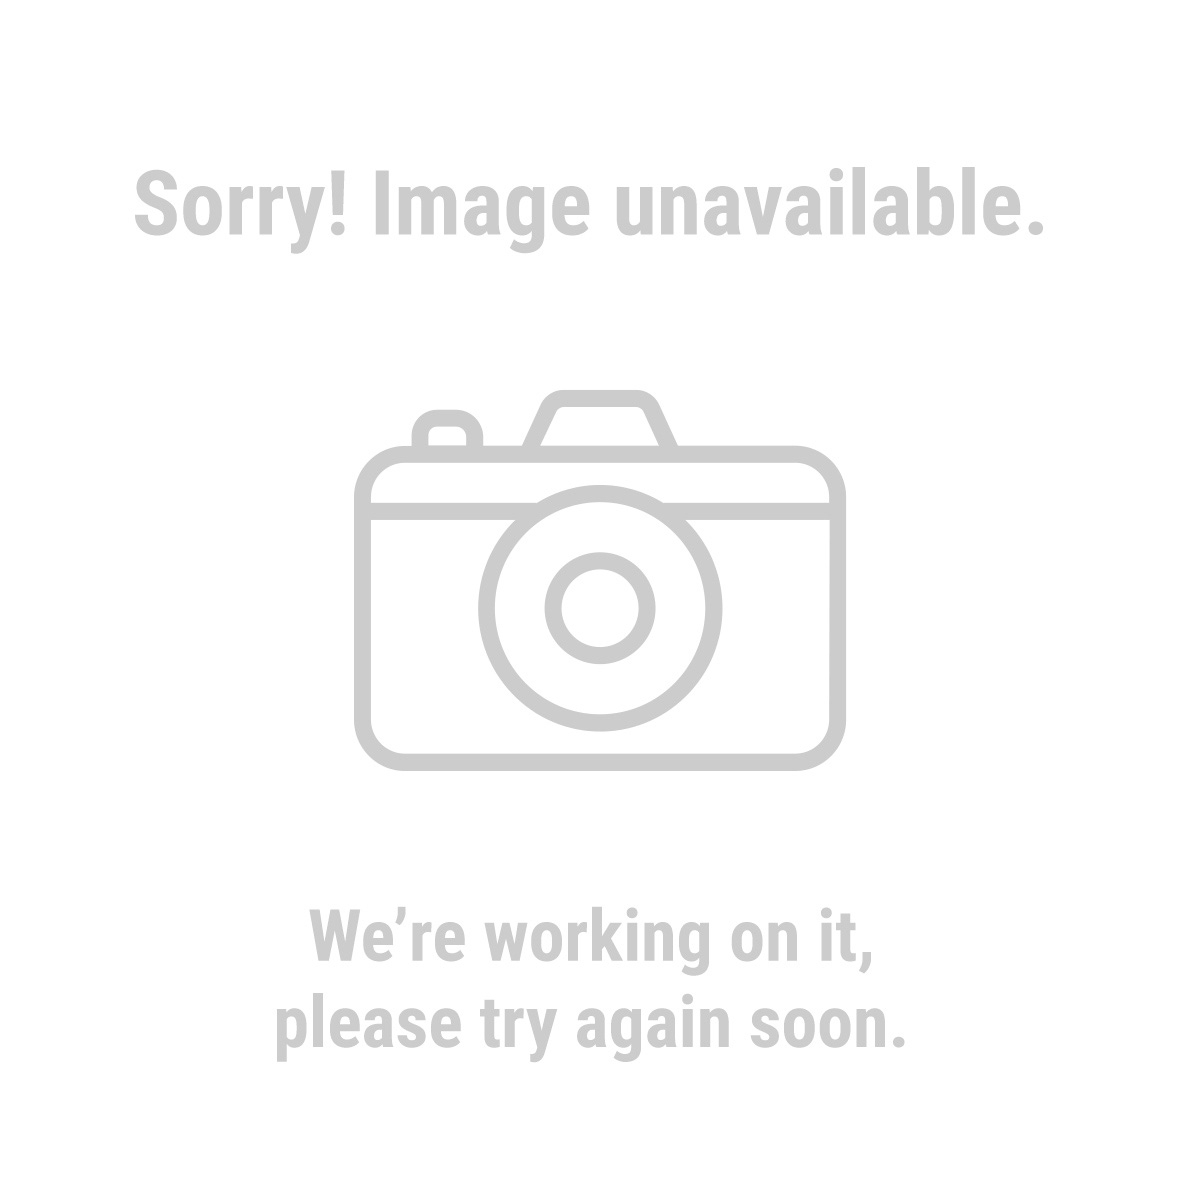 Central Pneumatic 62249 100 ft. x 3/8 in. Heavy Duty Premium Rubber Air Hose